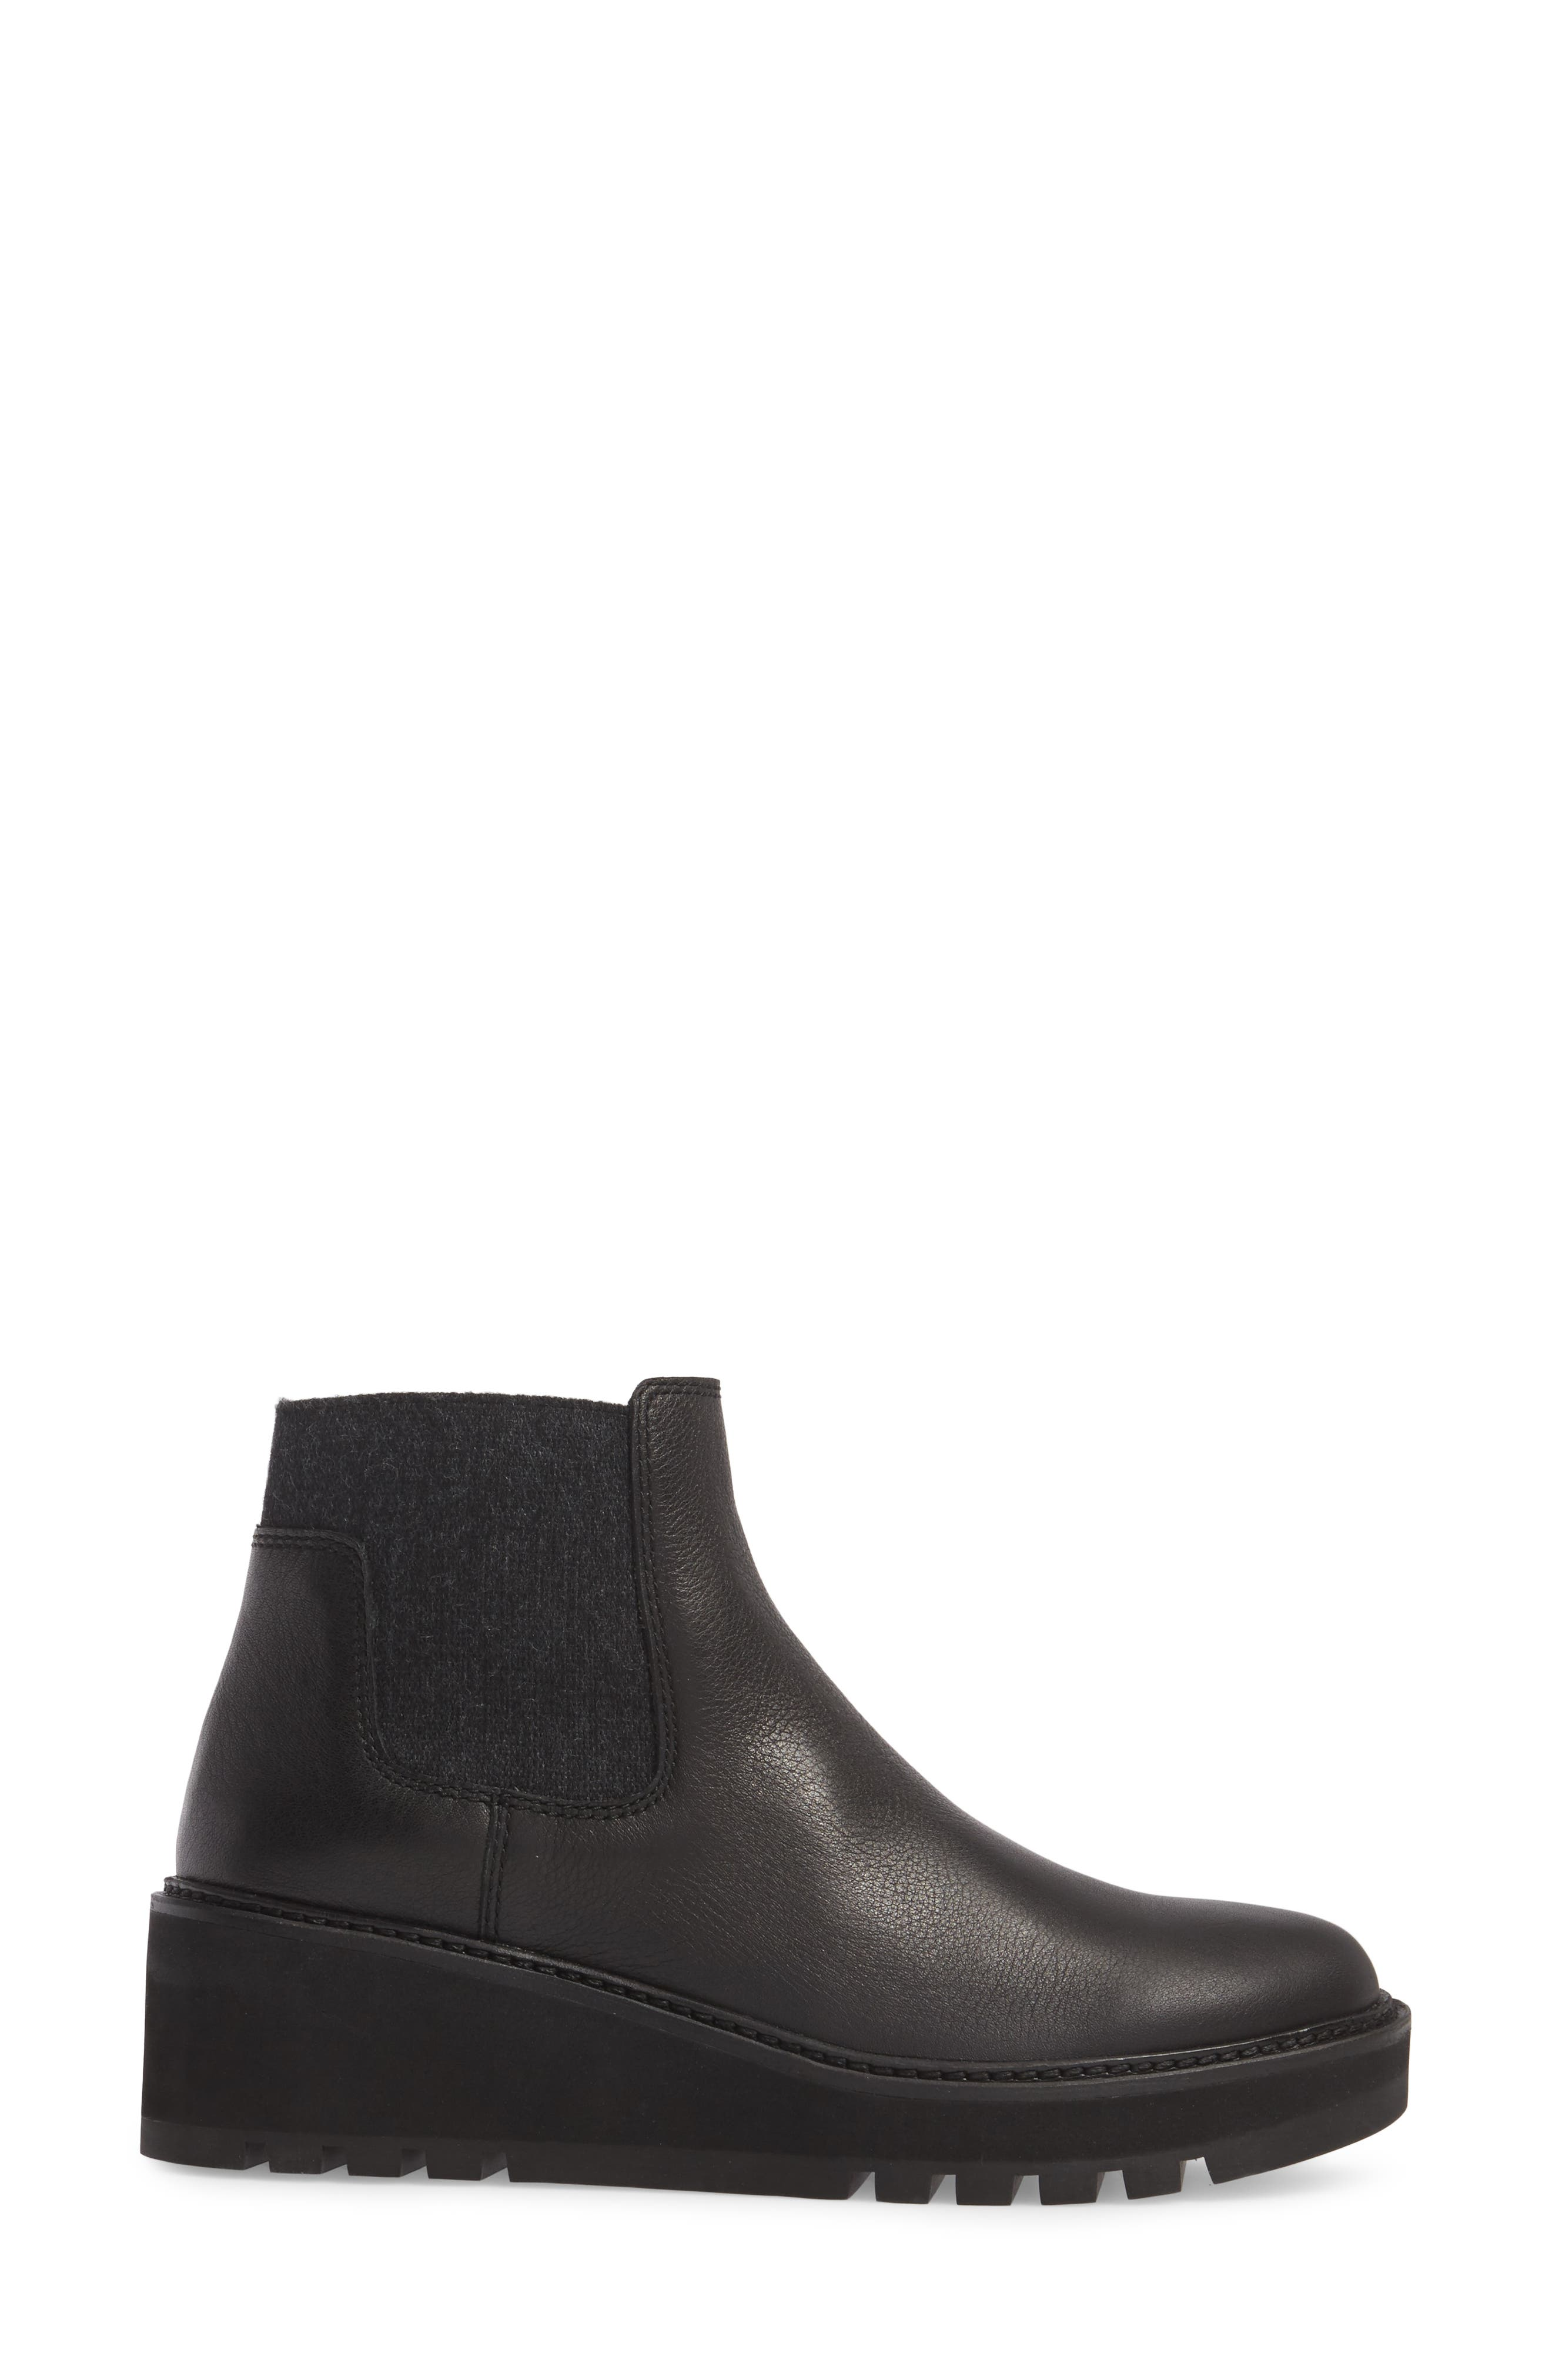 Wedge Chelsea Bootie,                             Alternate thumbnail 3, color,                             Black Washed Leather